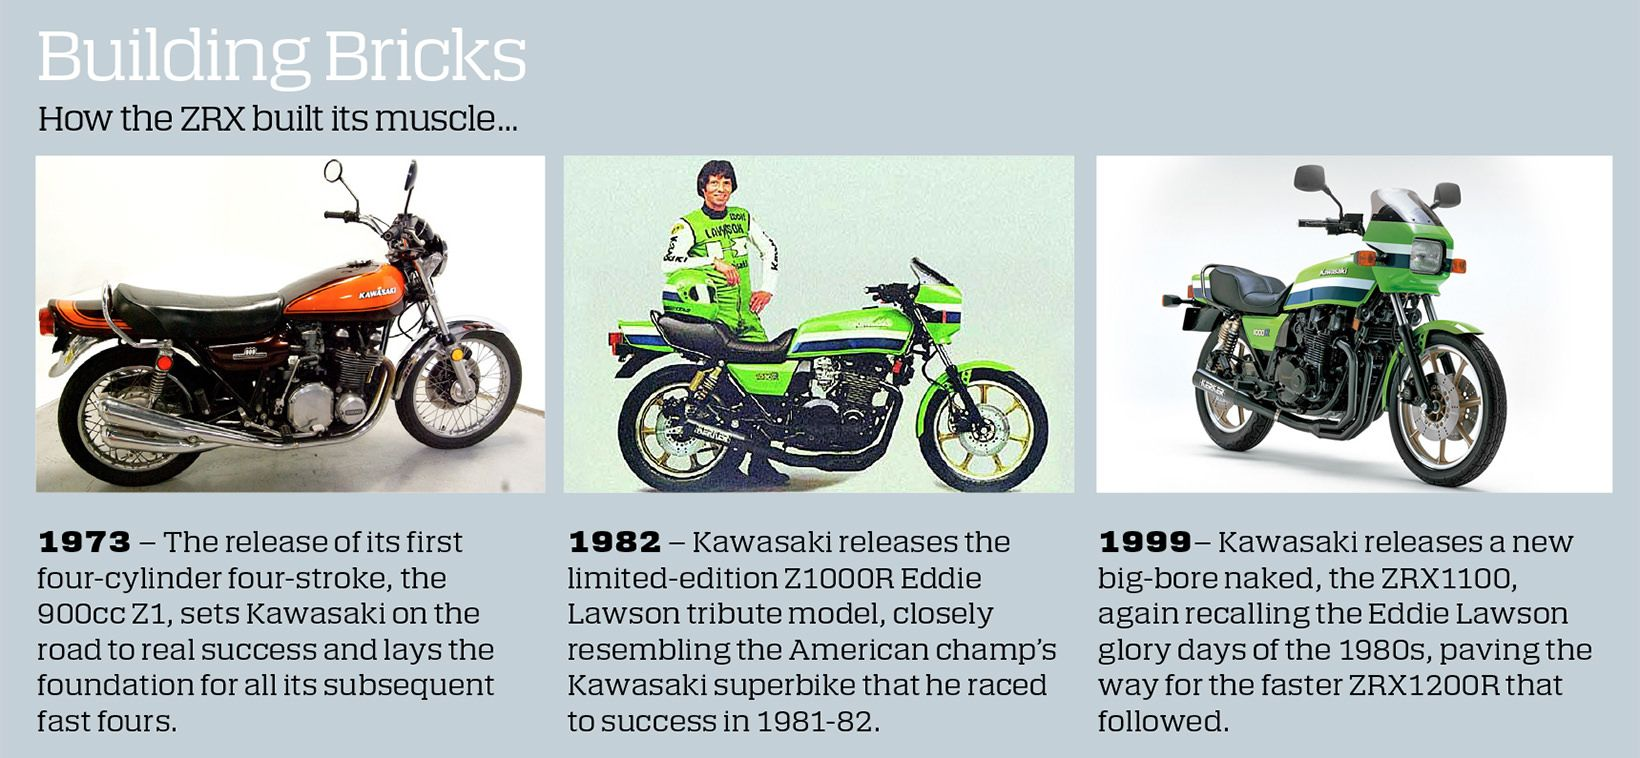 Special K The Kawasaki Zrx1200r Is A Universal Japanese Motorcycle With Benefits Shannons Club